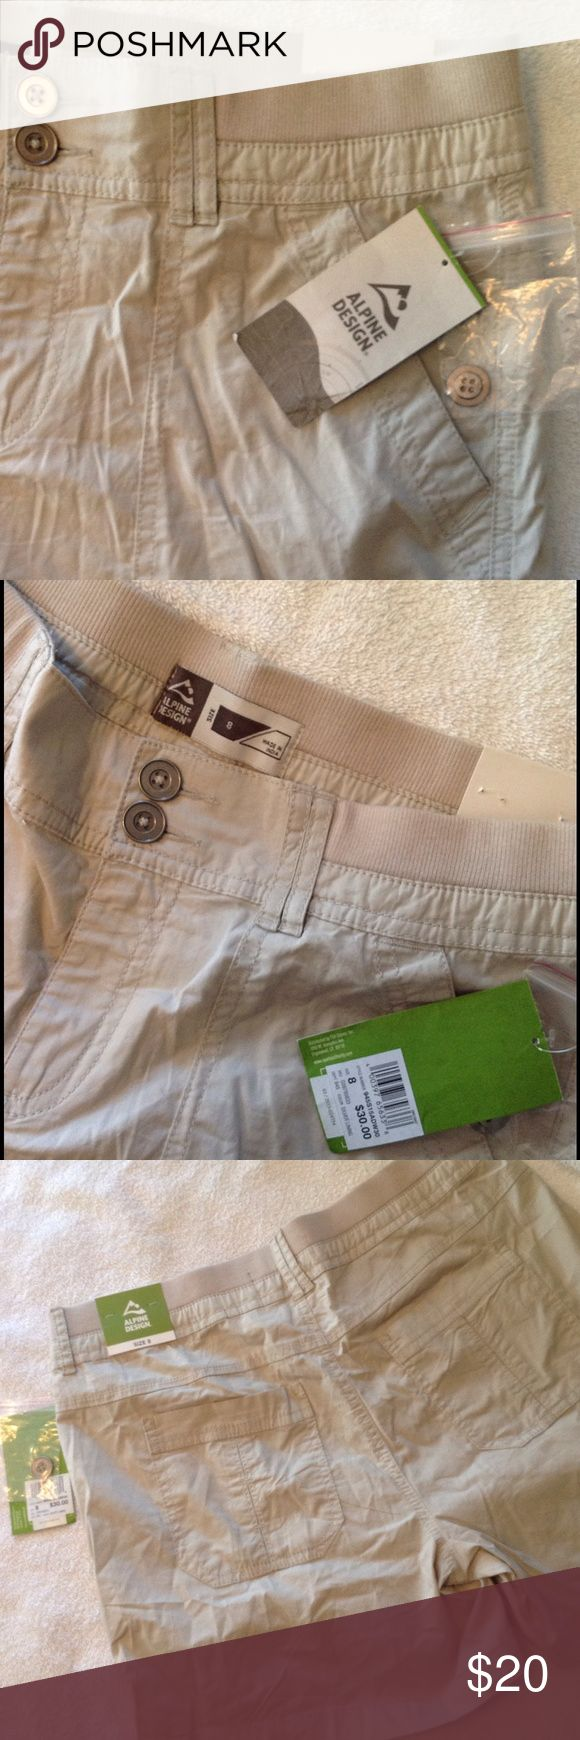 Alpine Design beige shorts - size 8 They call the color silver lining - looks like a light beige to me.  New with tags.  2 larger pockets in front and one smaller inside a pocket.  2 more large pockets in the back. Great hiking shorts! alpine design Shorts